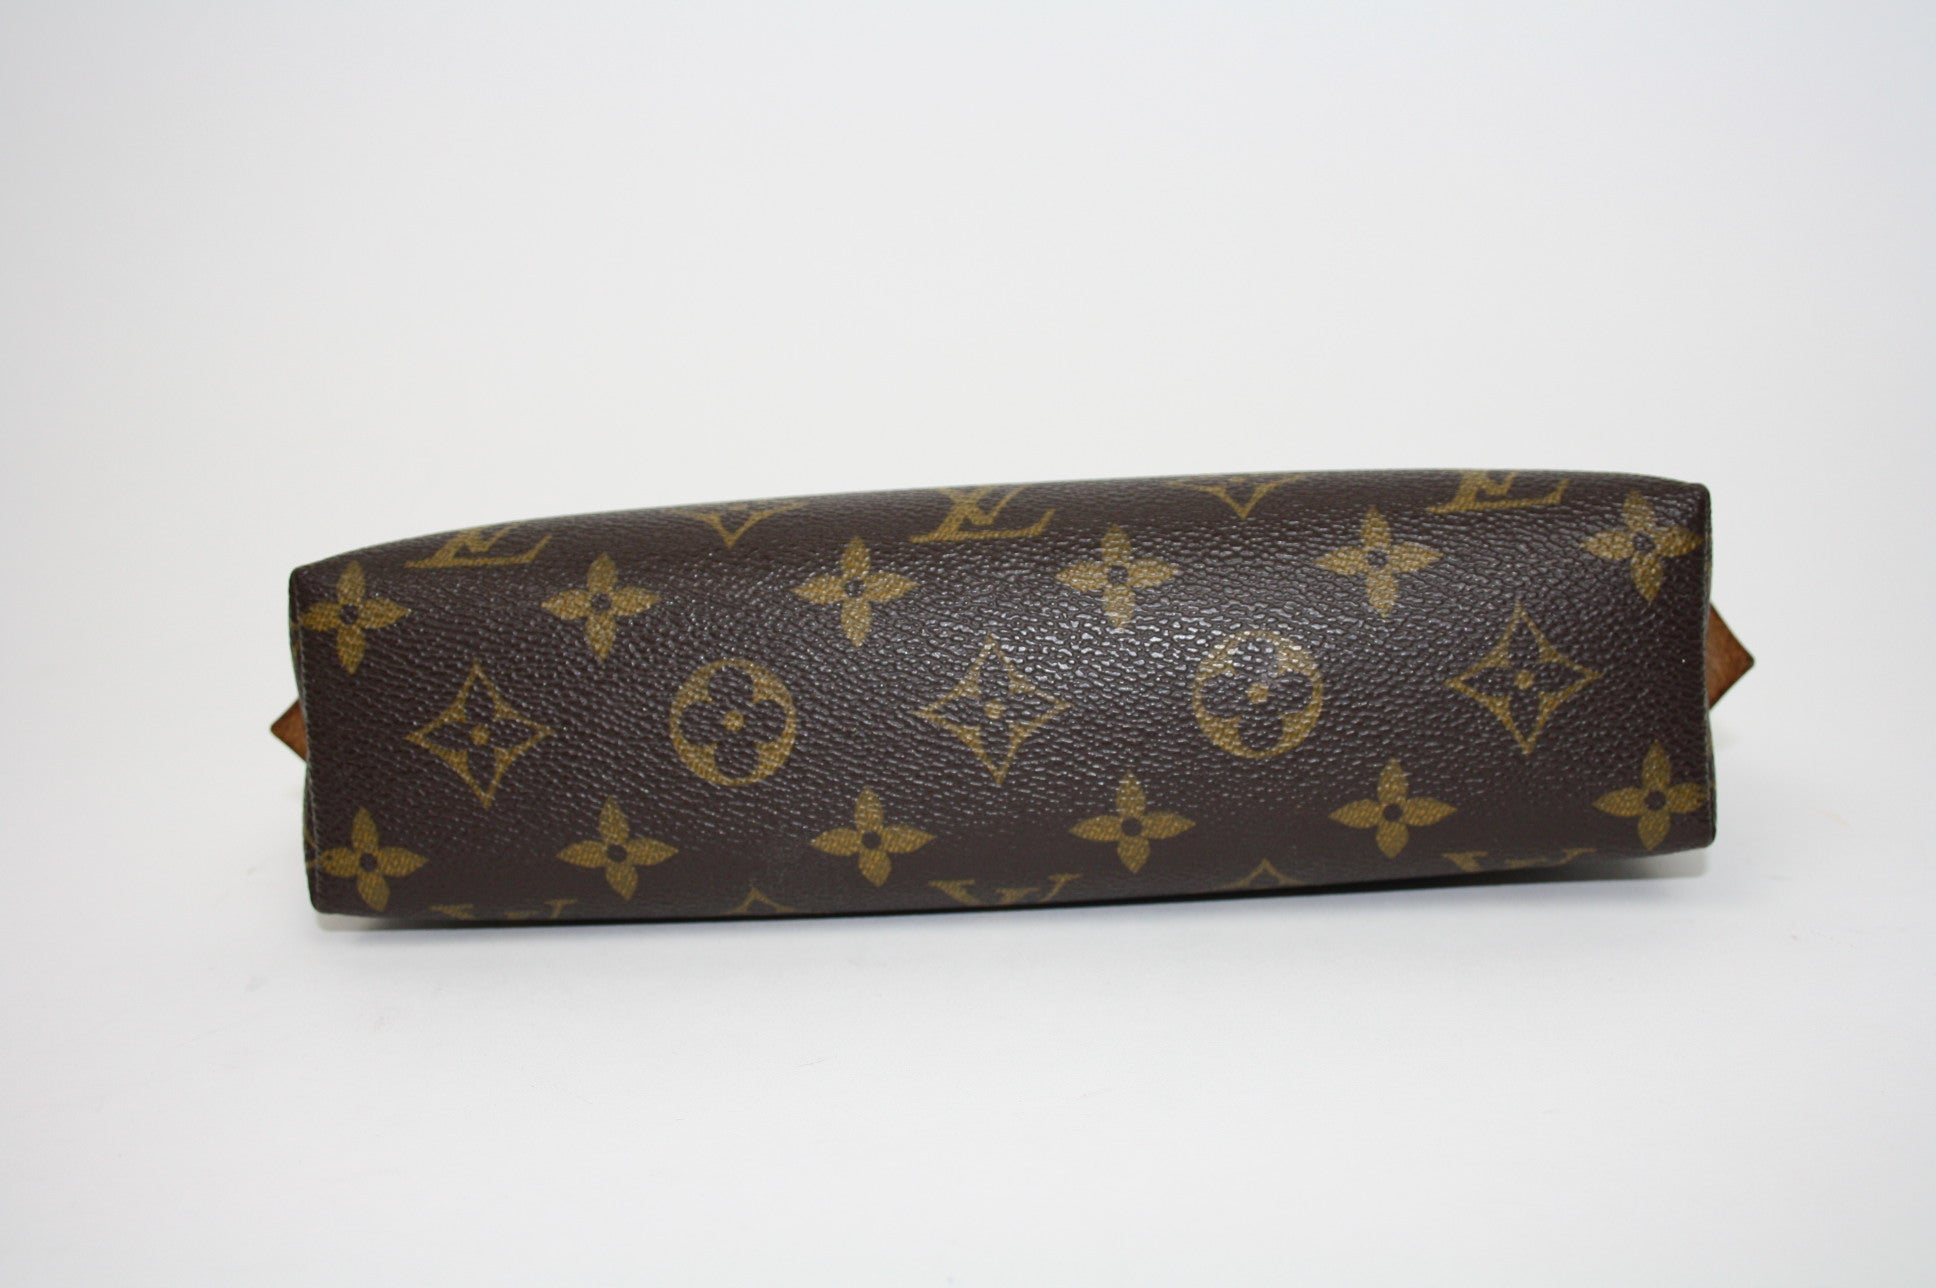 Louis Vuitton Comestic Pouch - Iconics Preloved Luxury